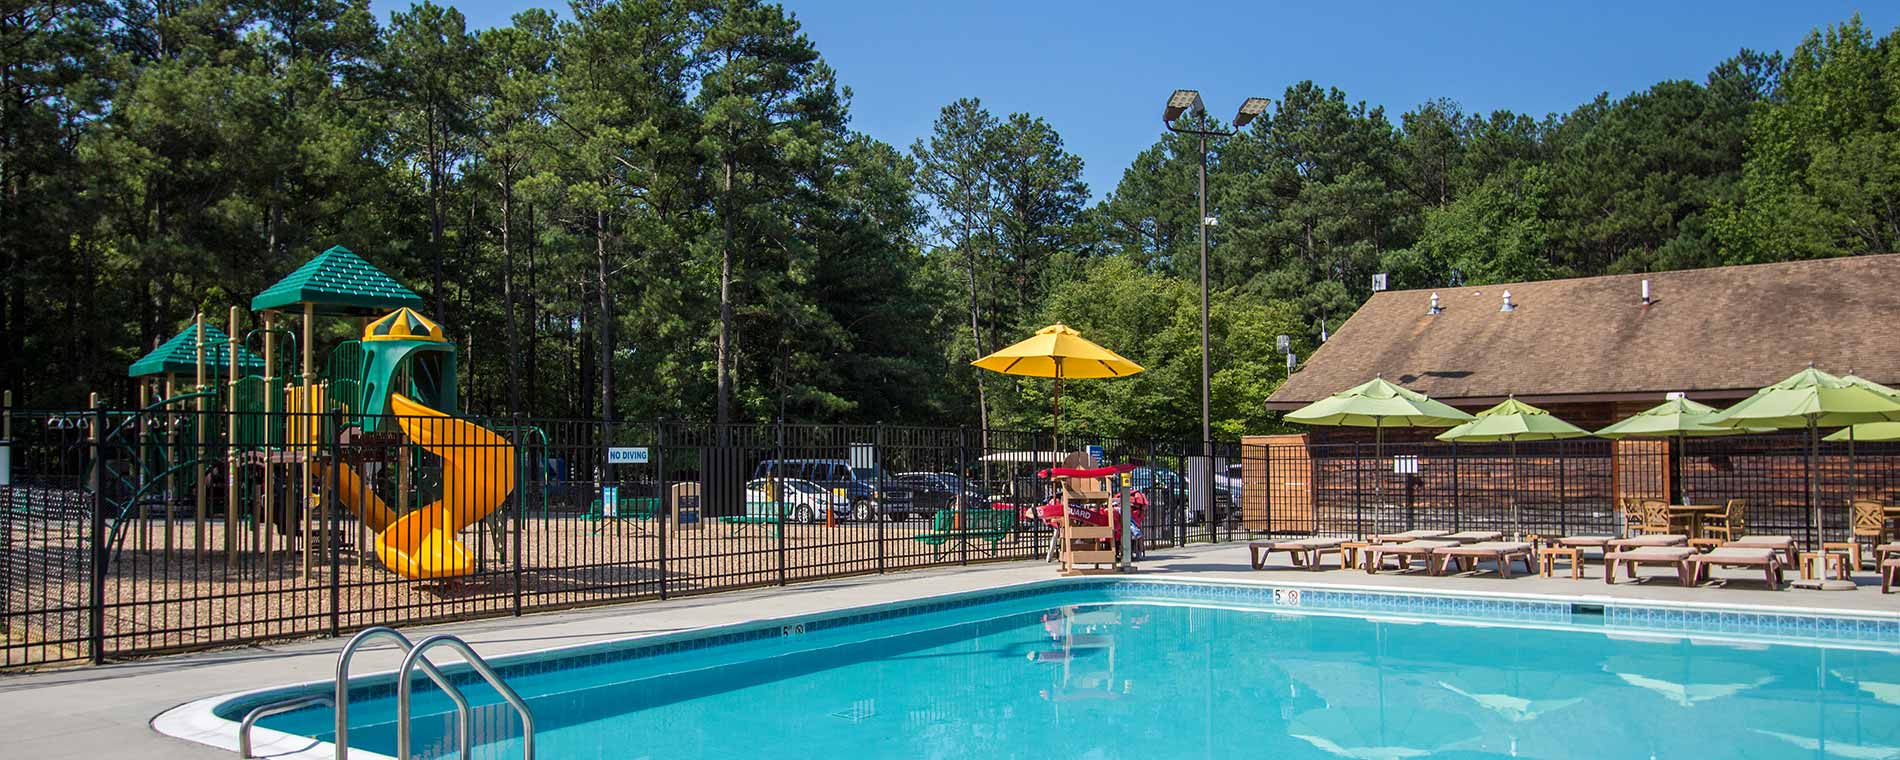 Relaxing Pool & Playground at Kings Dominion KOA Camp Site